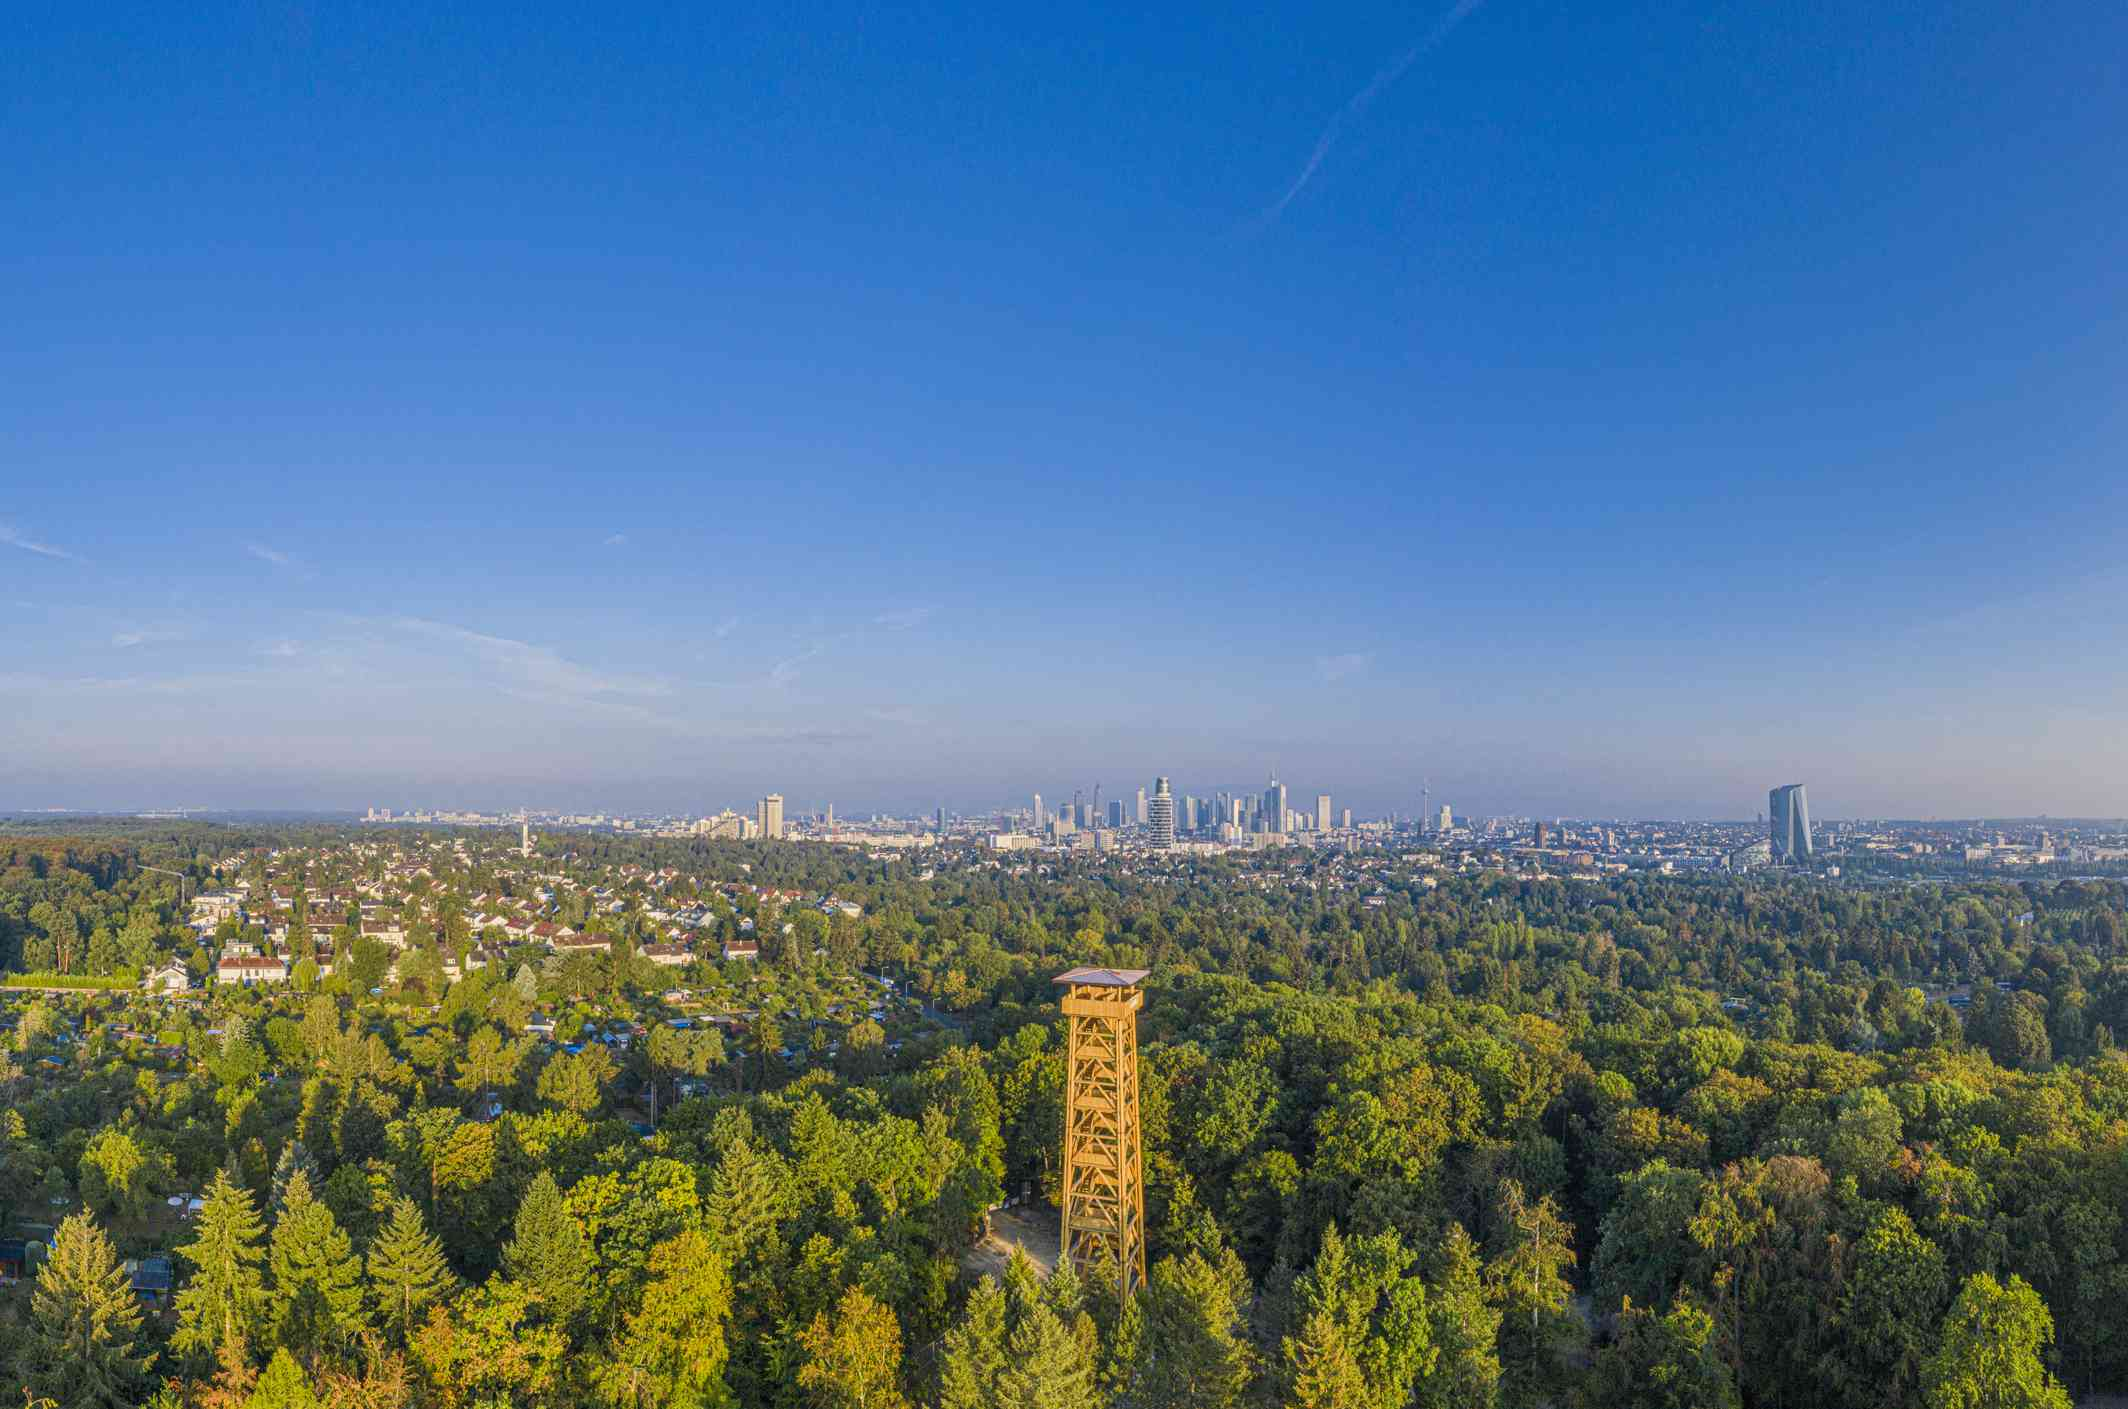 Aerial view of the yellow Goethe tower in a massive park with the Frankfurt skyline on the horizon